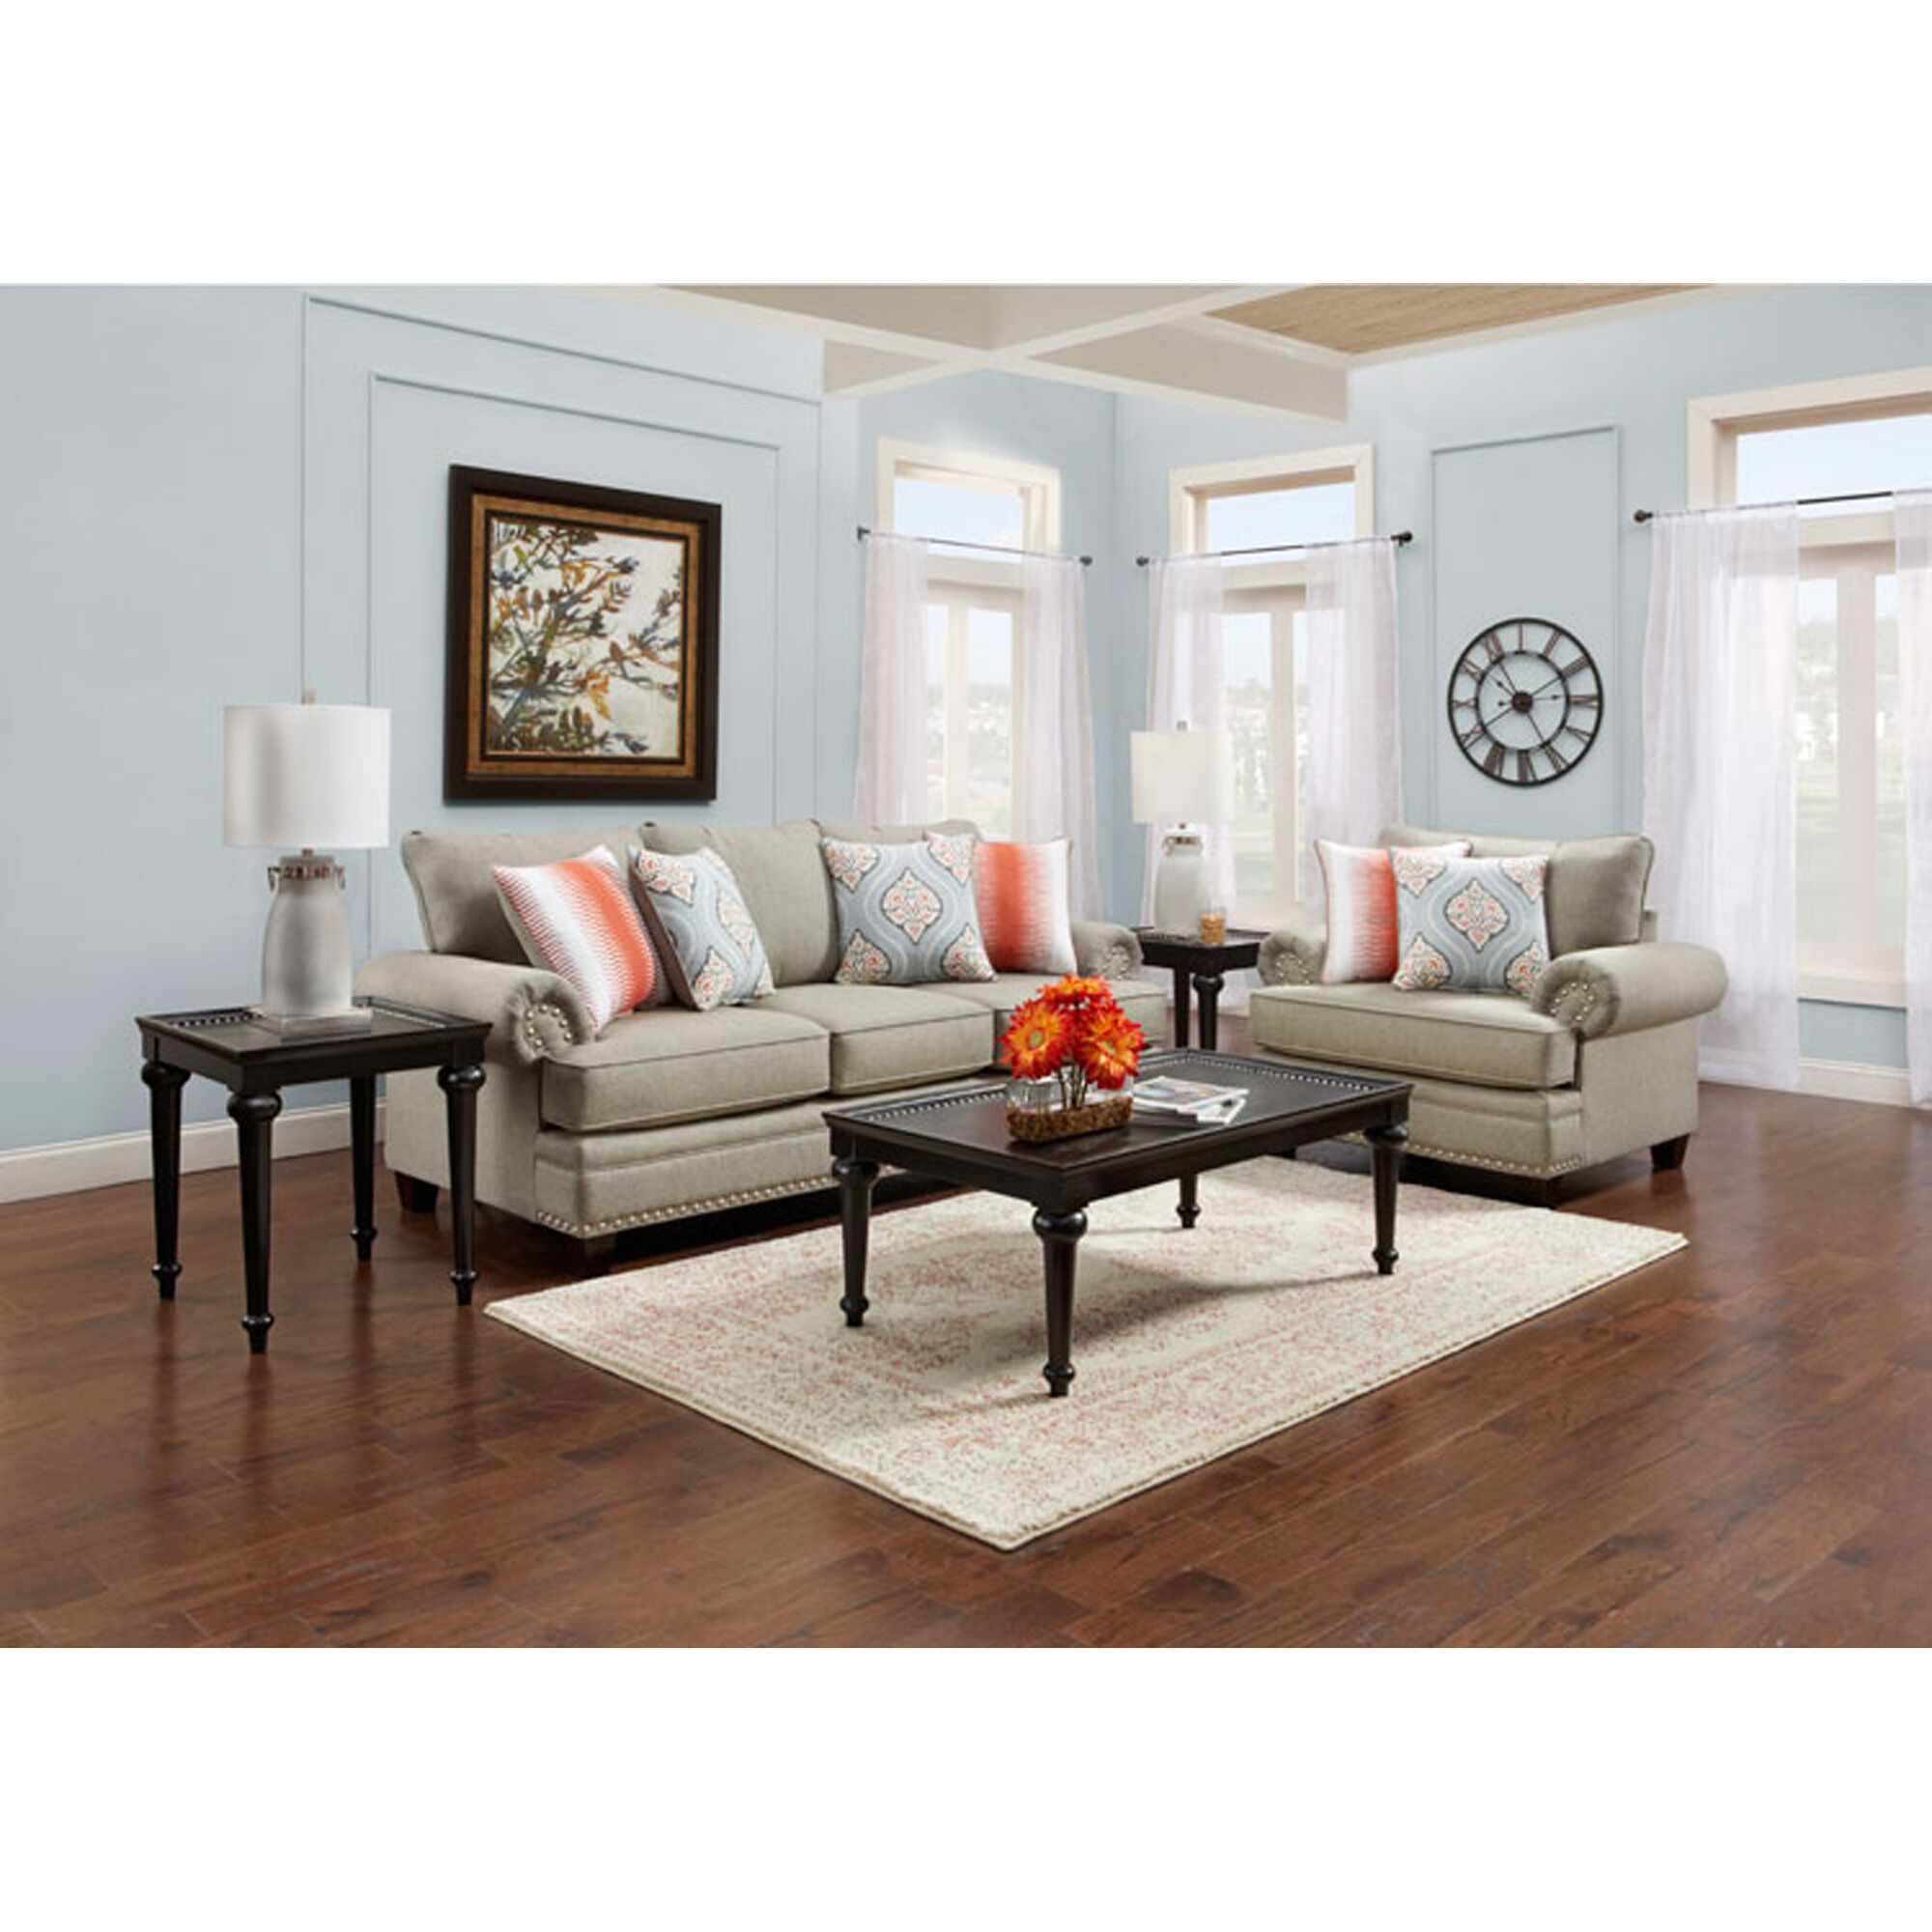 7 Piece Villa Living Room Collection. Fusion Furniture